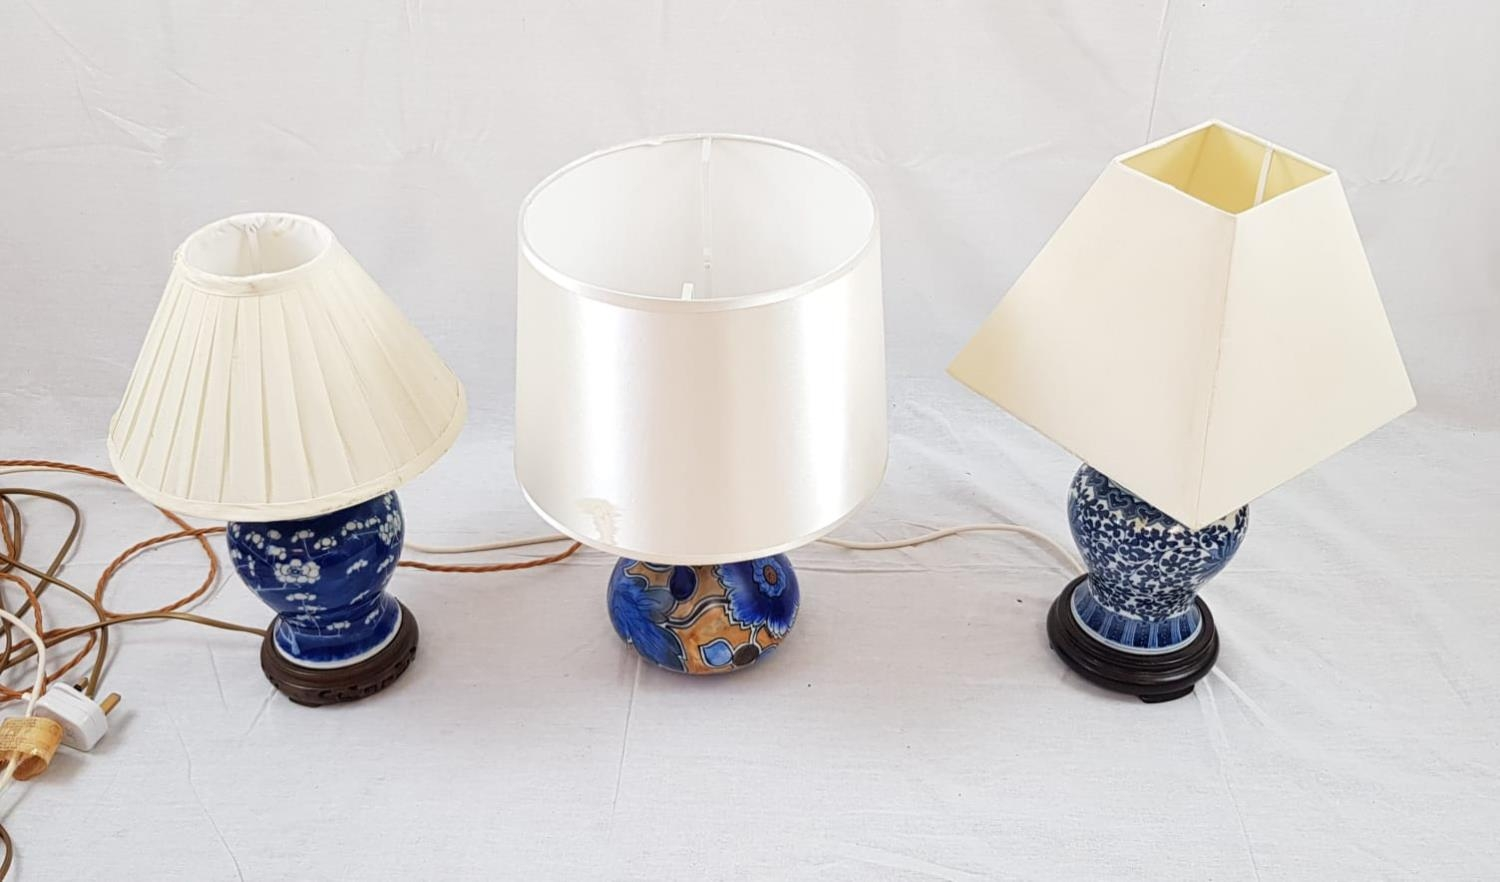 3 Ceramic table lamps with shades. Two are Chinese with a blue decorative glaze. The third is a